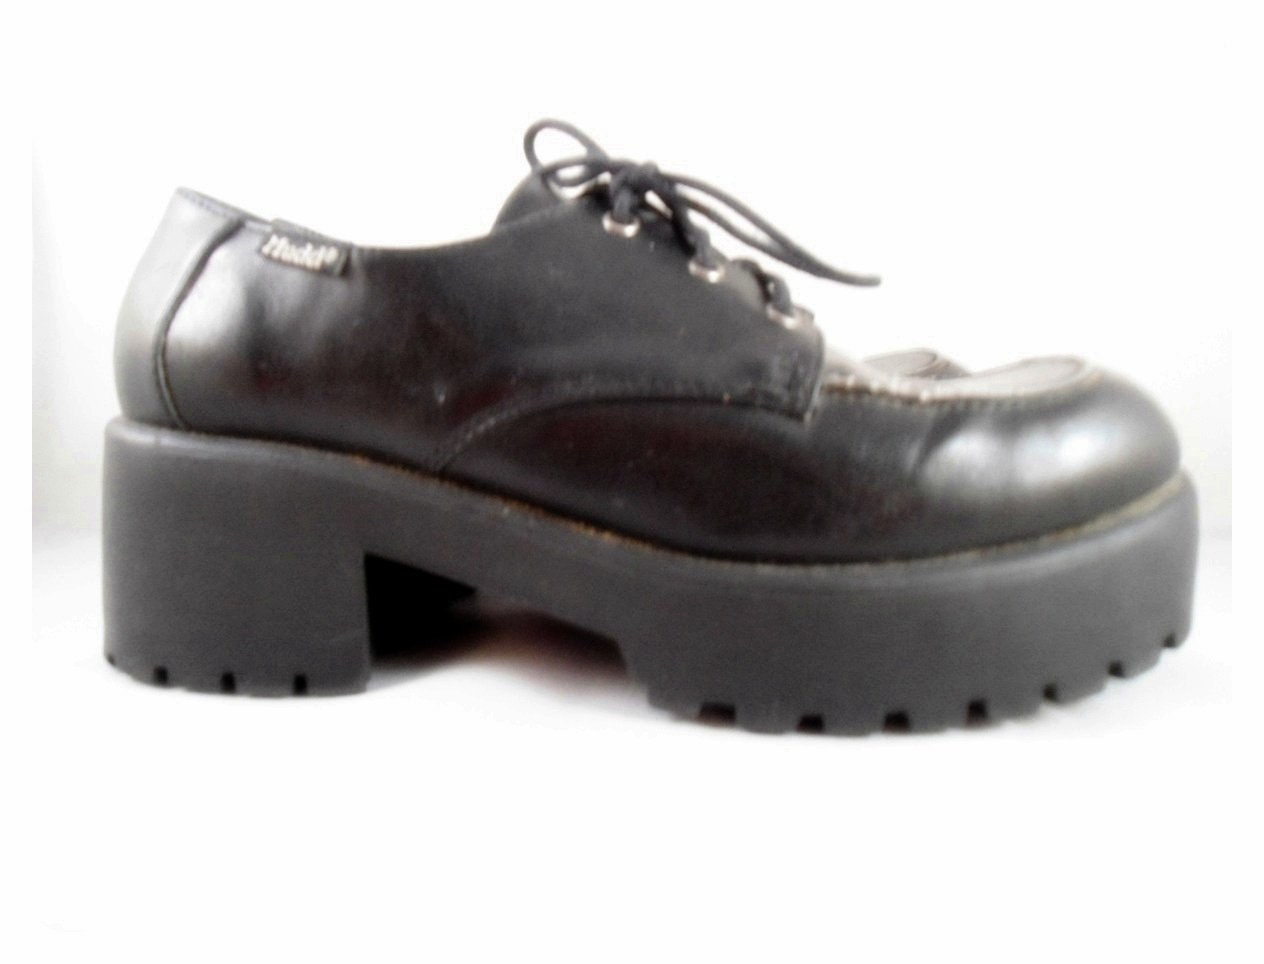 MUDD Black PLATFORM Tie Shoes - Size 9.5 Girls Womens Oxford - Chunky